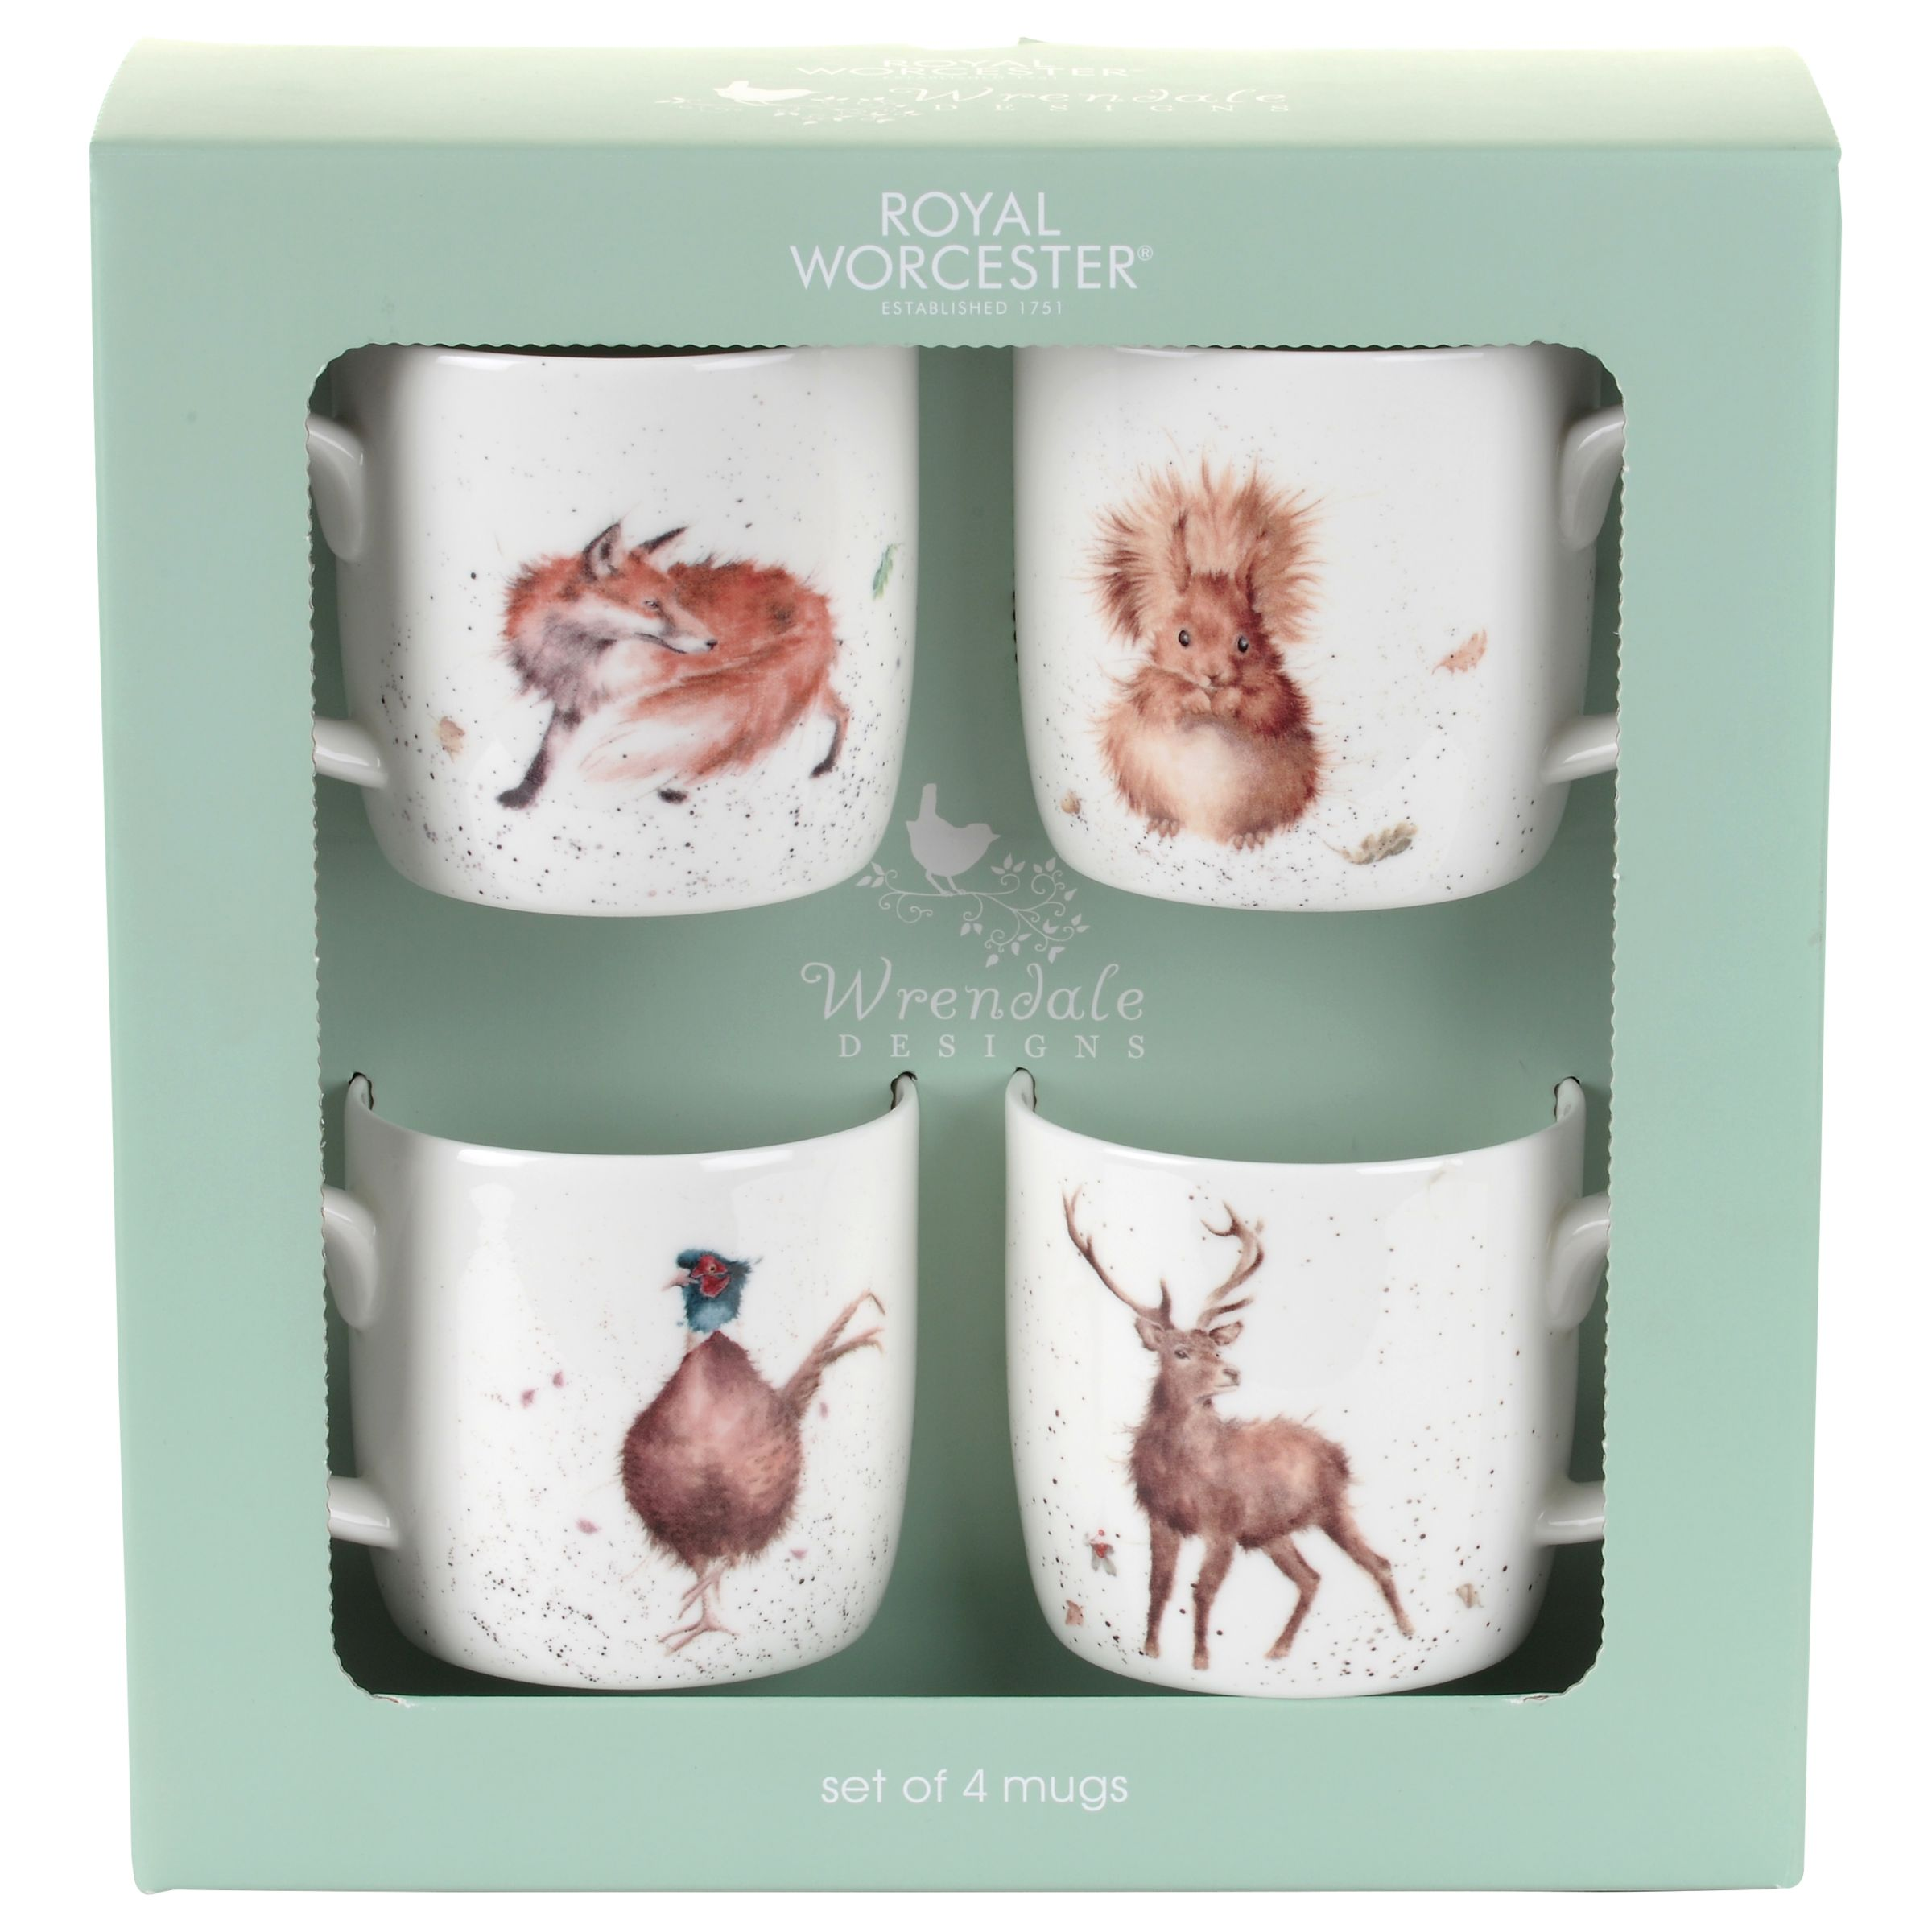 Royal Worcester Royal Worcester Wrendale Wild Animals Mugs, Set of 4